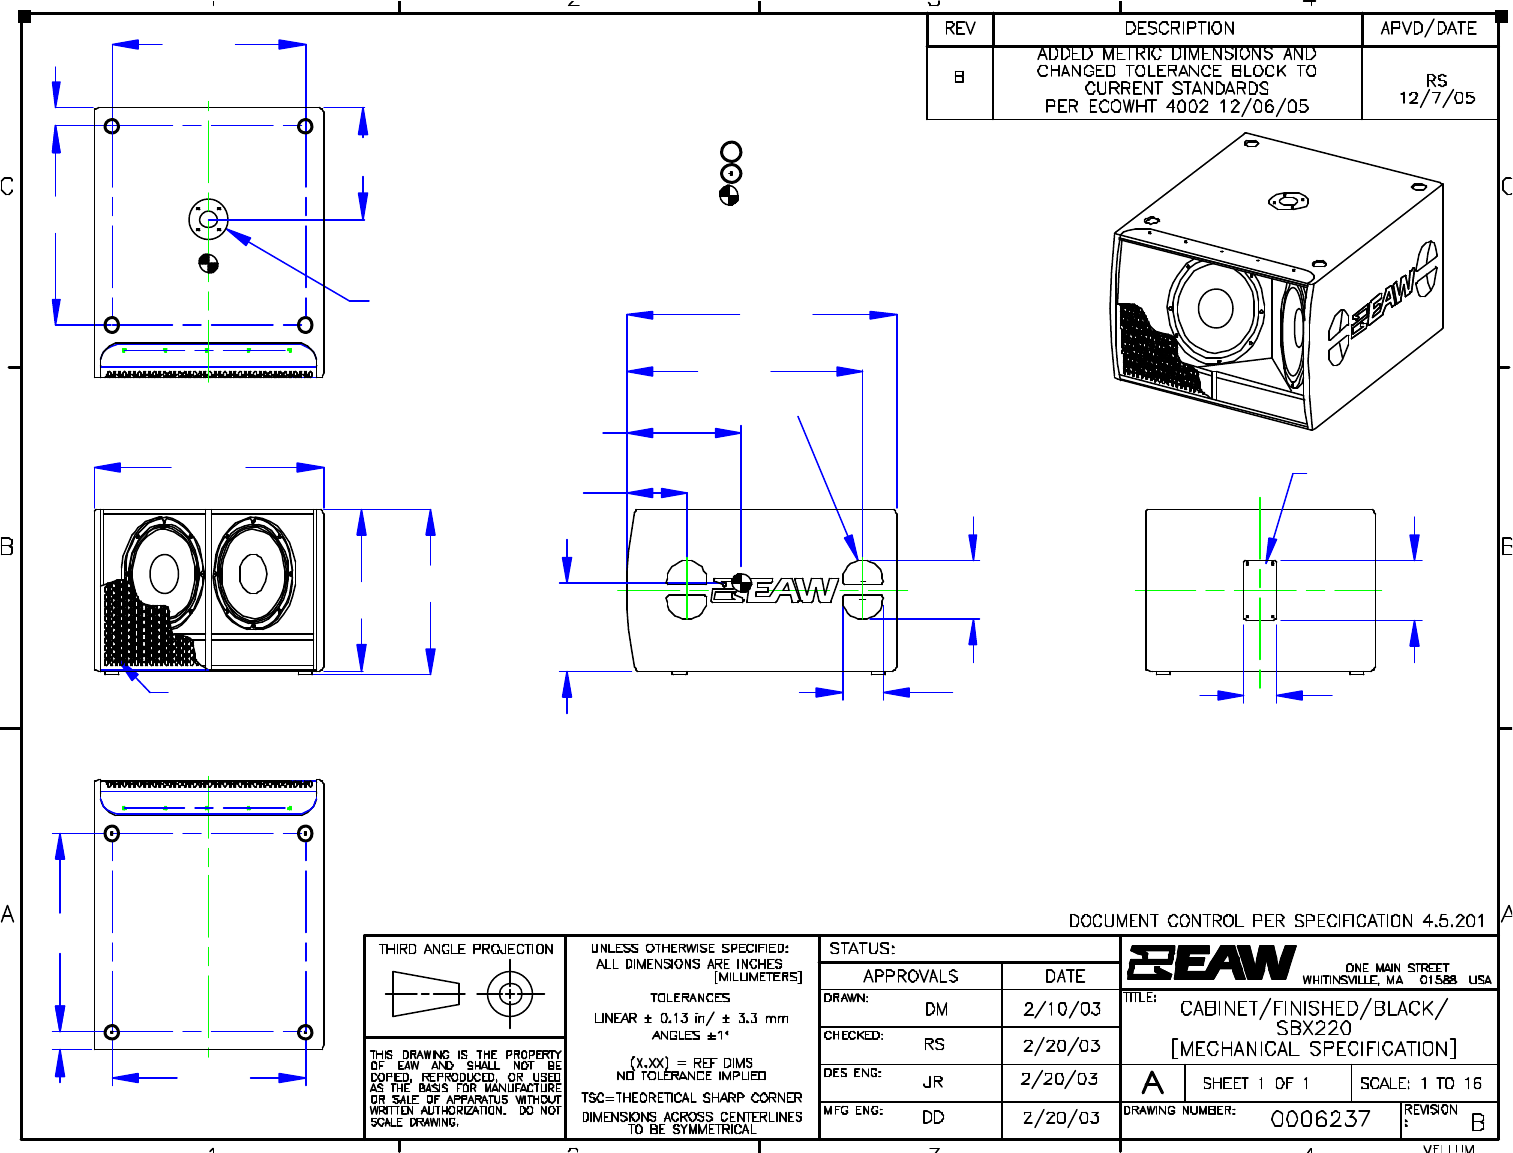 eaw sbx220 user guide